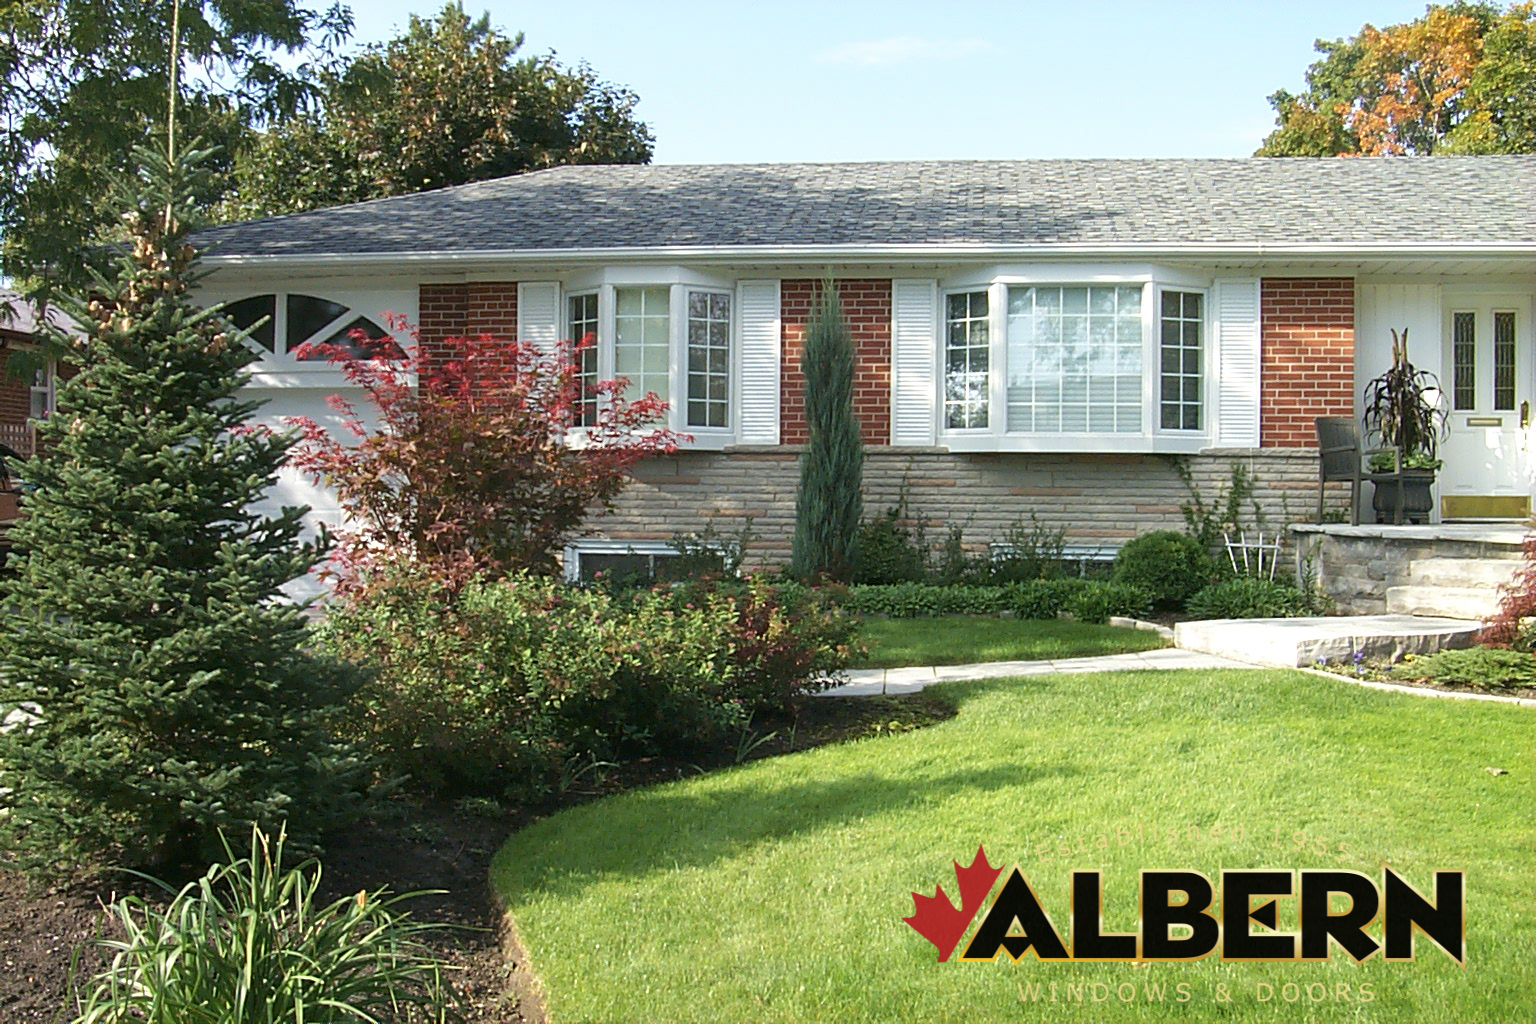 Albern Windows & Doors Installation Projects-3.jpg